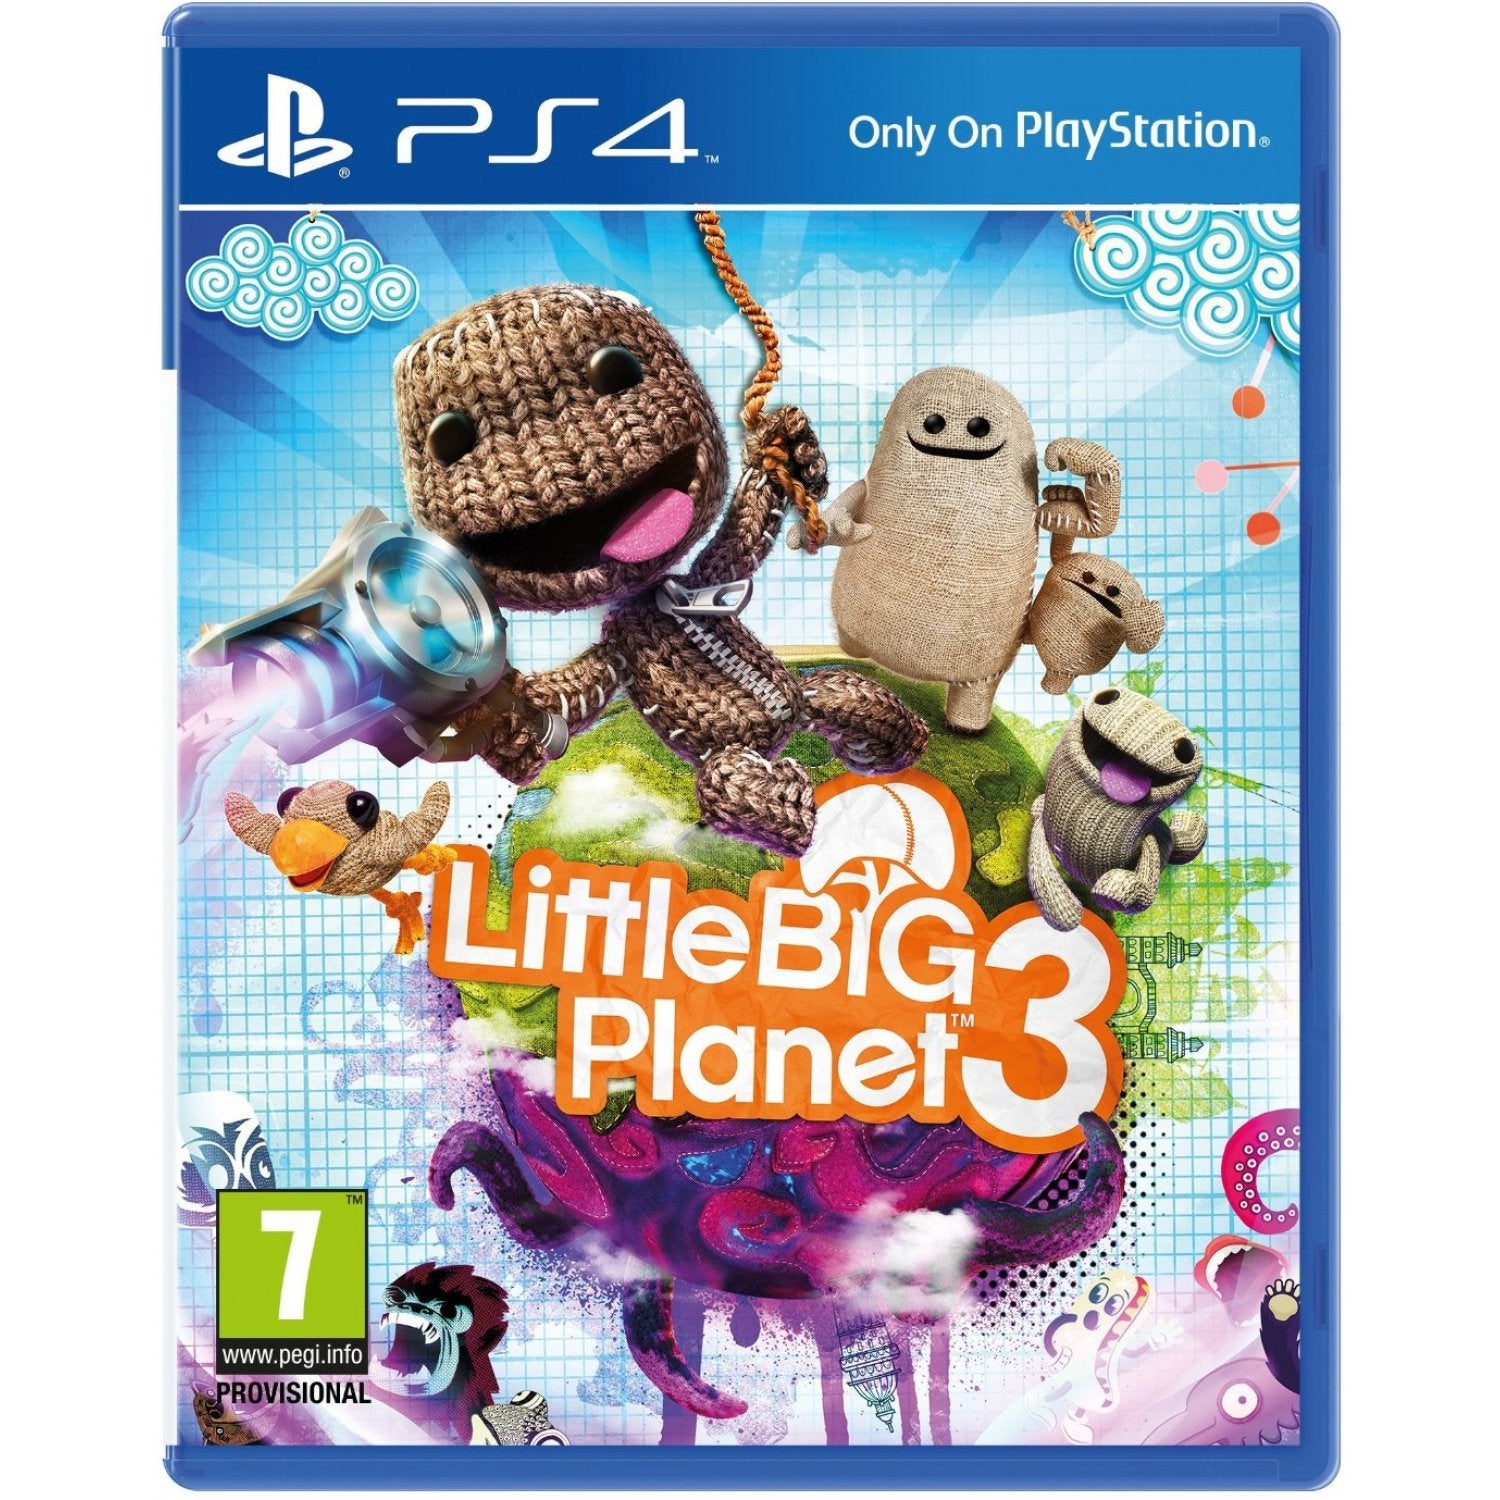 PS4 Little Big Planet 3 PlayStation Hits